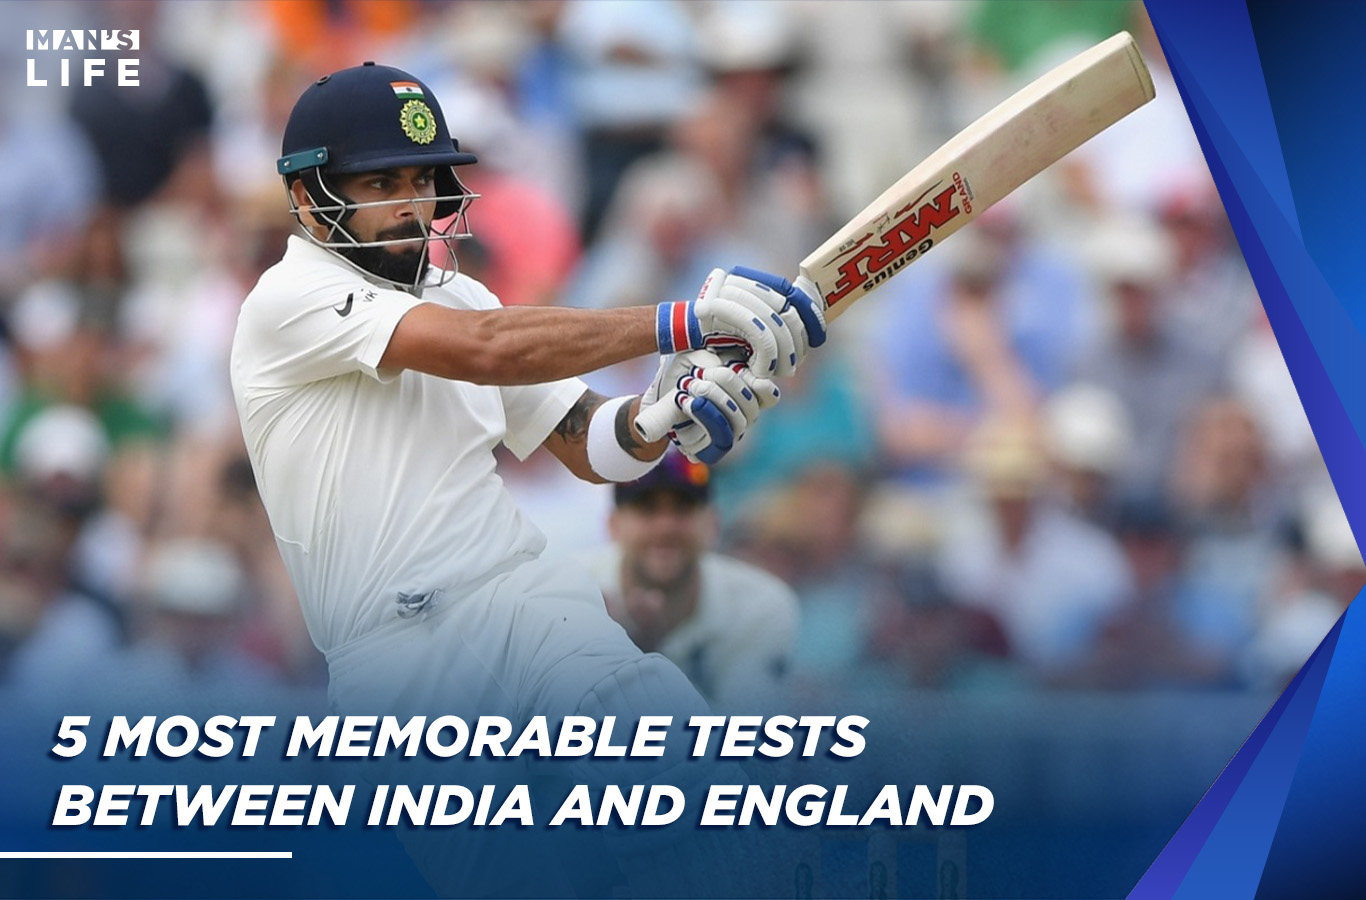 5 Memorable Tests between India and England